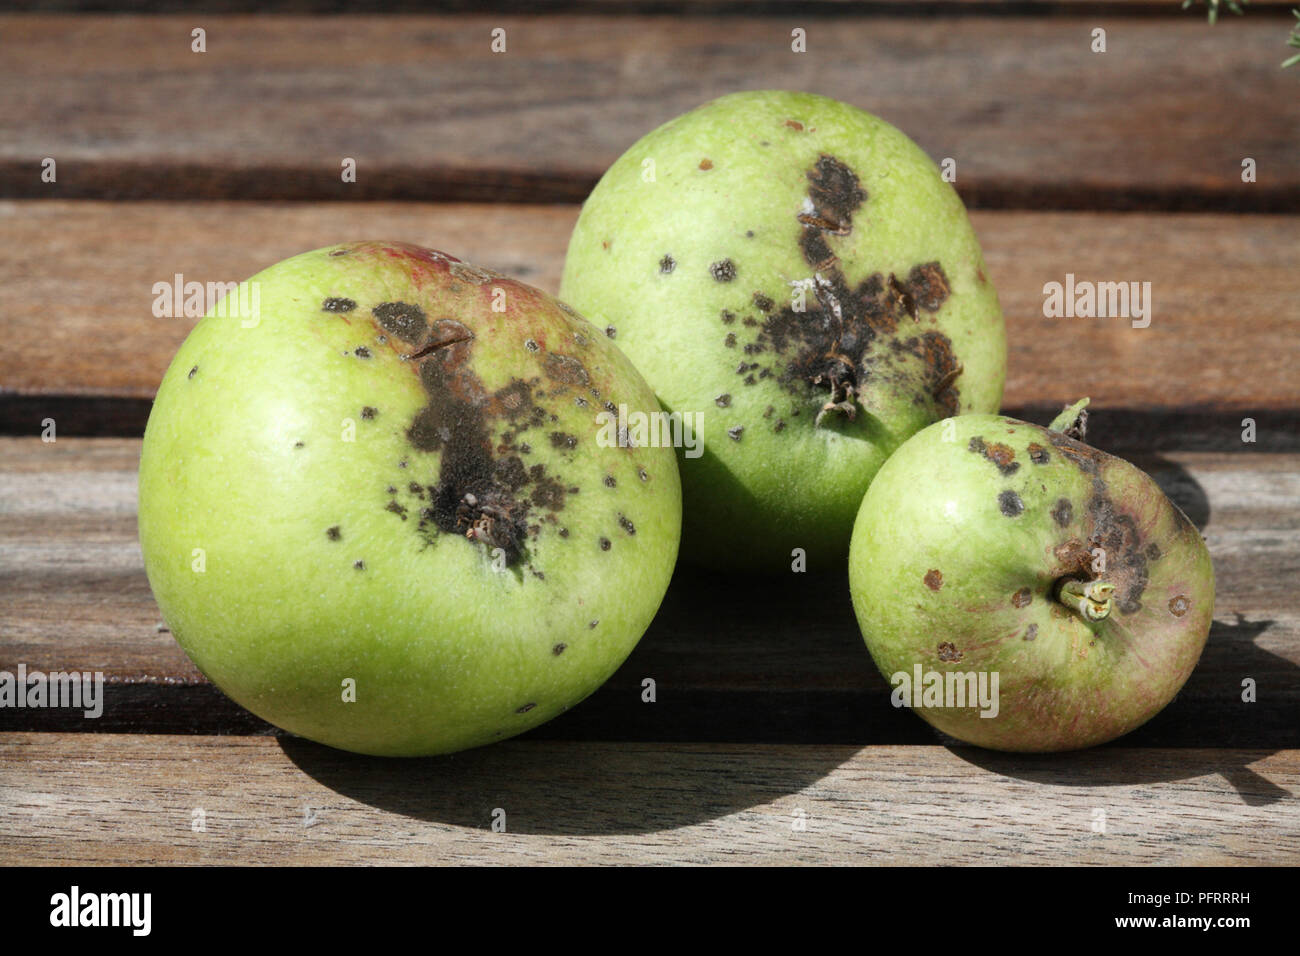 Green apples damaged by Venturia inaequalis (Apple Scab